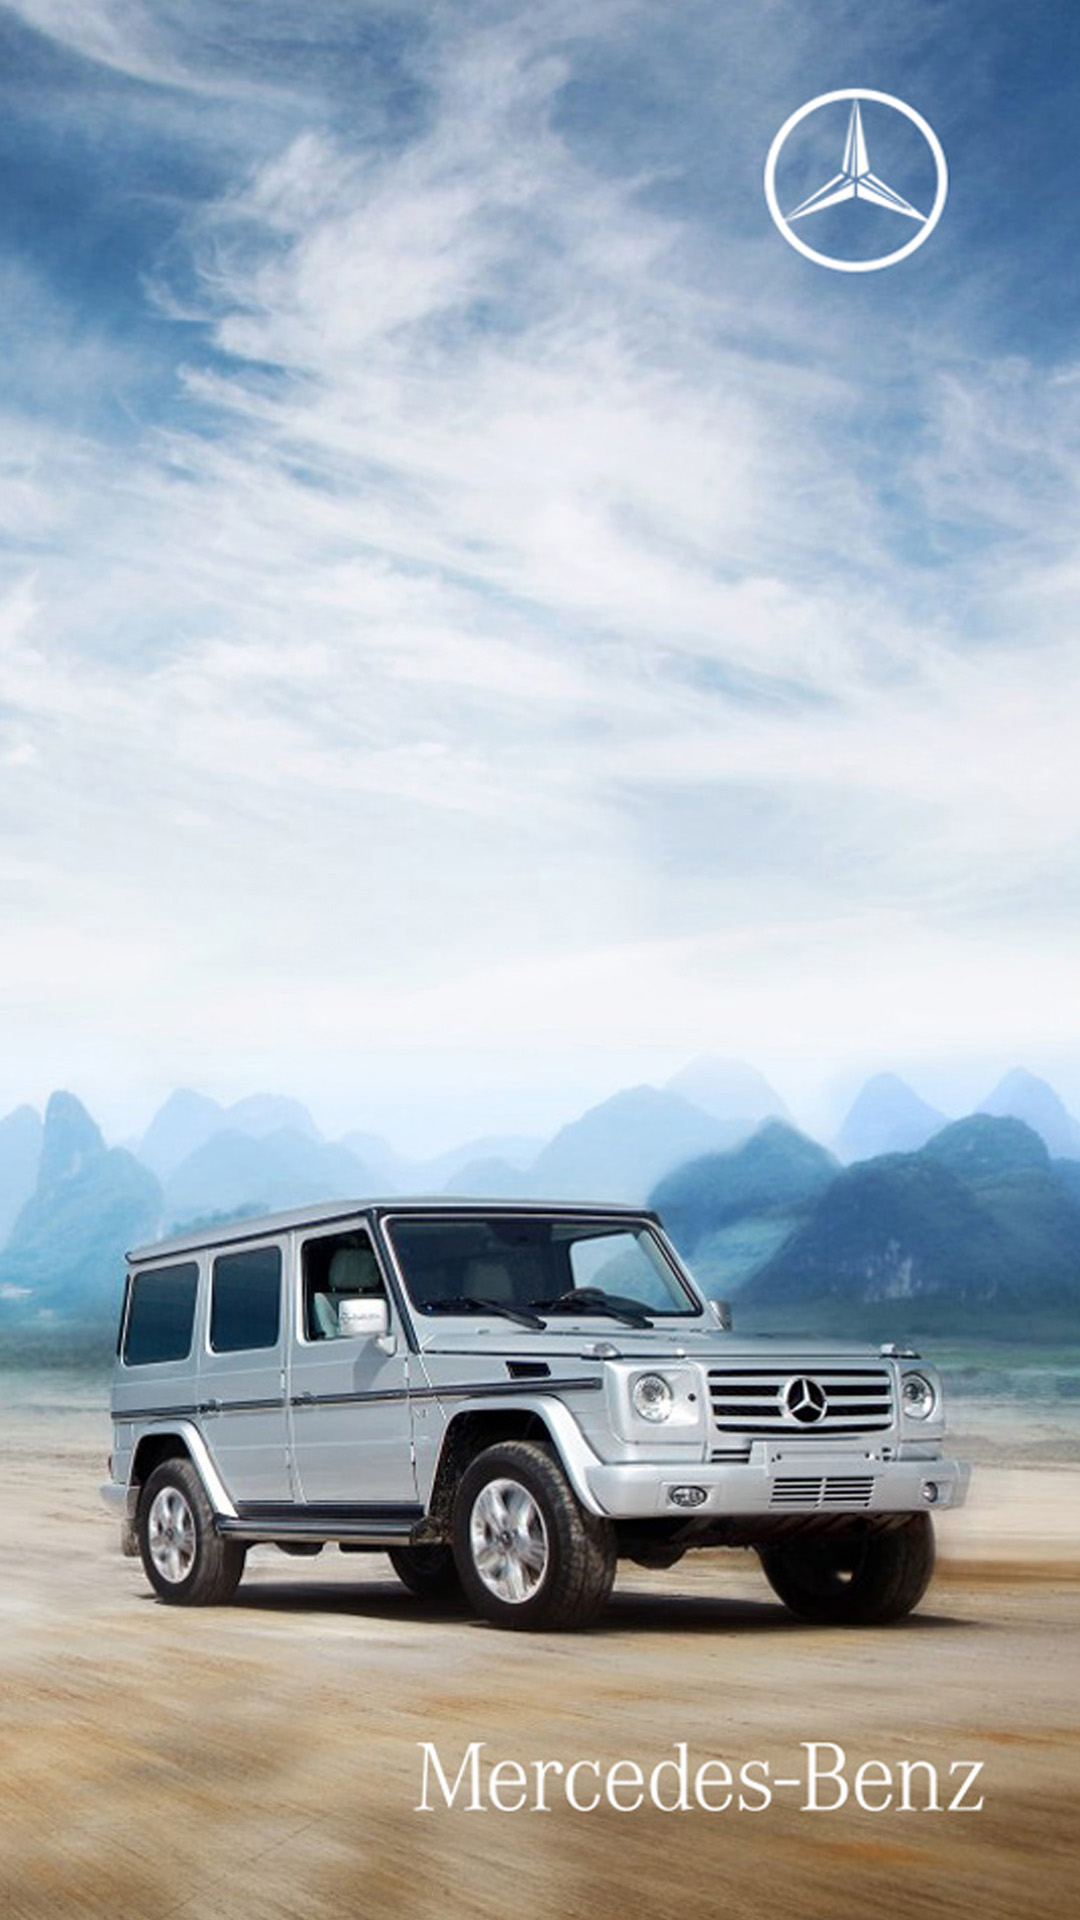 mercedesbenz car desert htc one wallpaper